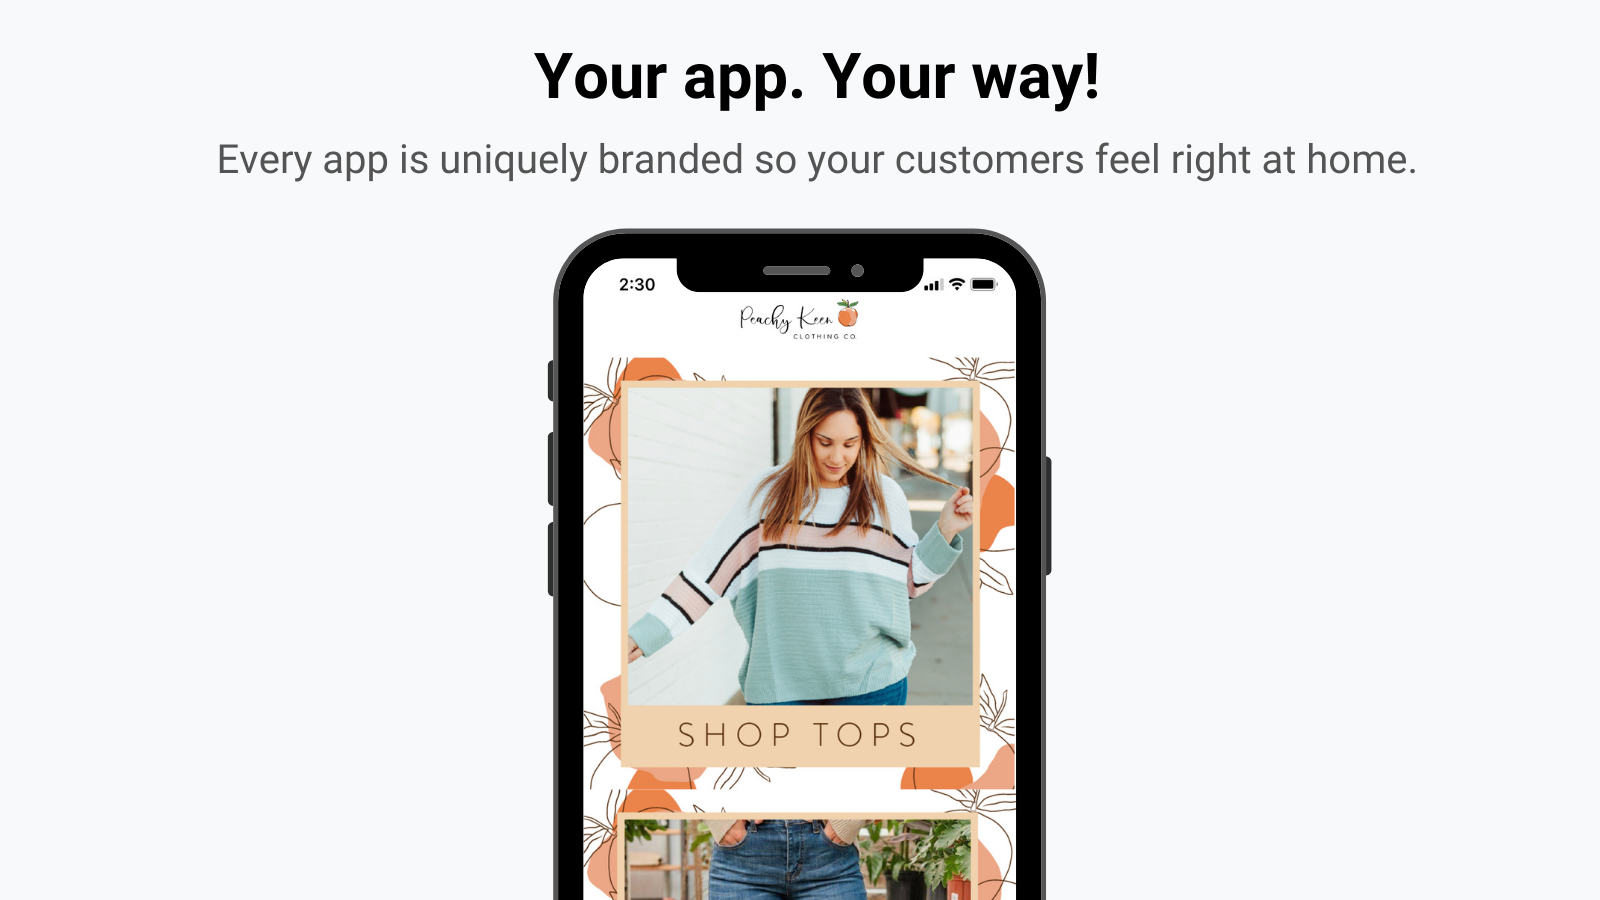 Your App. Your way!